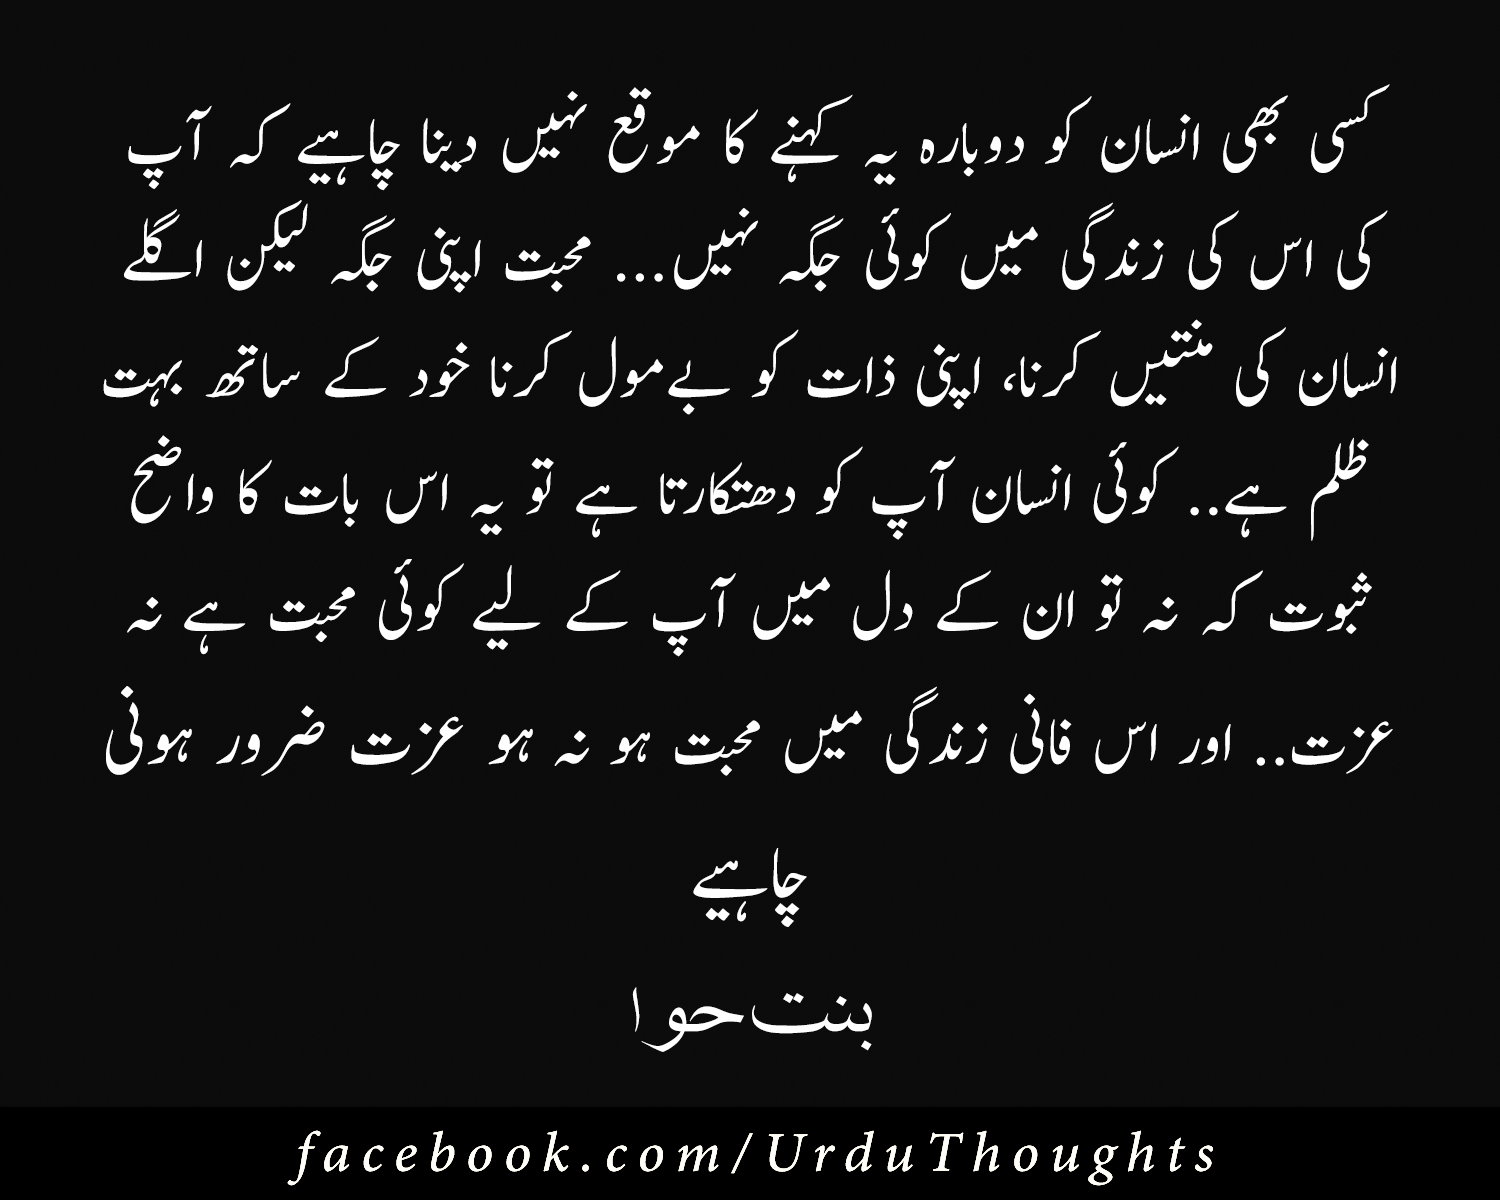 Quotes In Urdu Endearing Best Awesome Beautiful Quotes In Urdu With Pictures  Urdu Thoughts